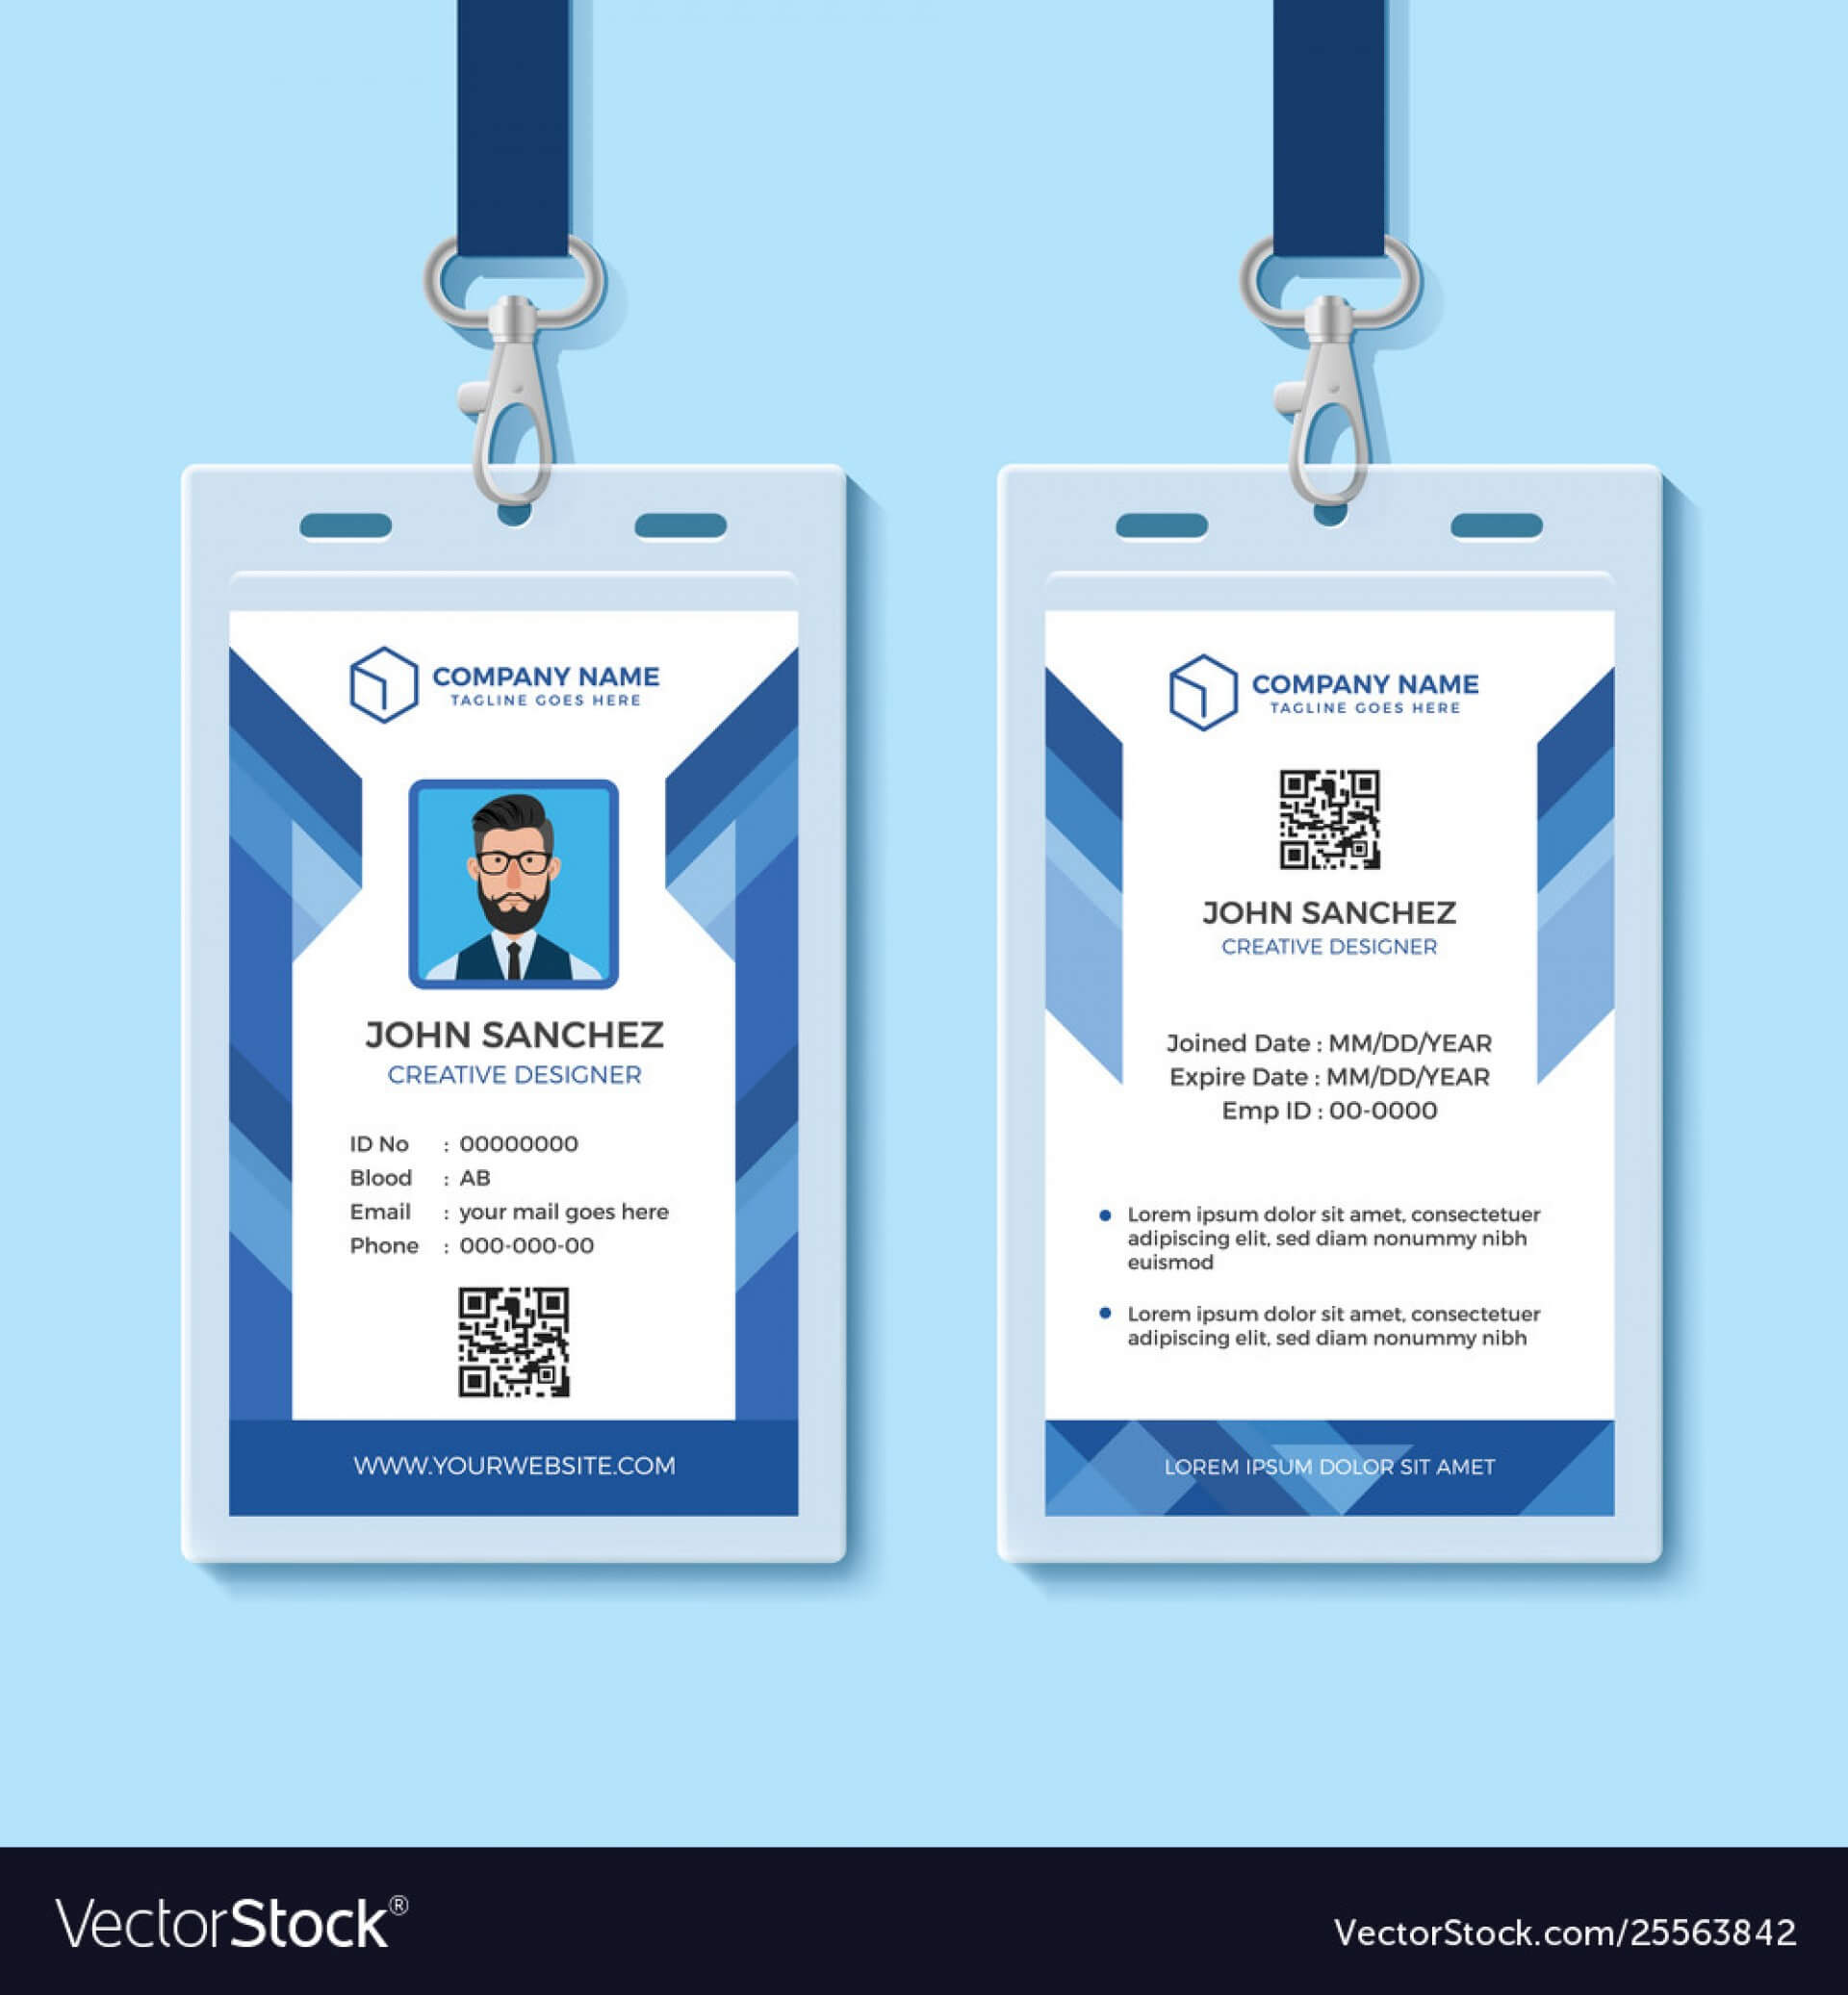 042 Template Ideas Employee Id Card Templates Blue Design With Regard To Id Card Template For Microsoft Word